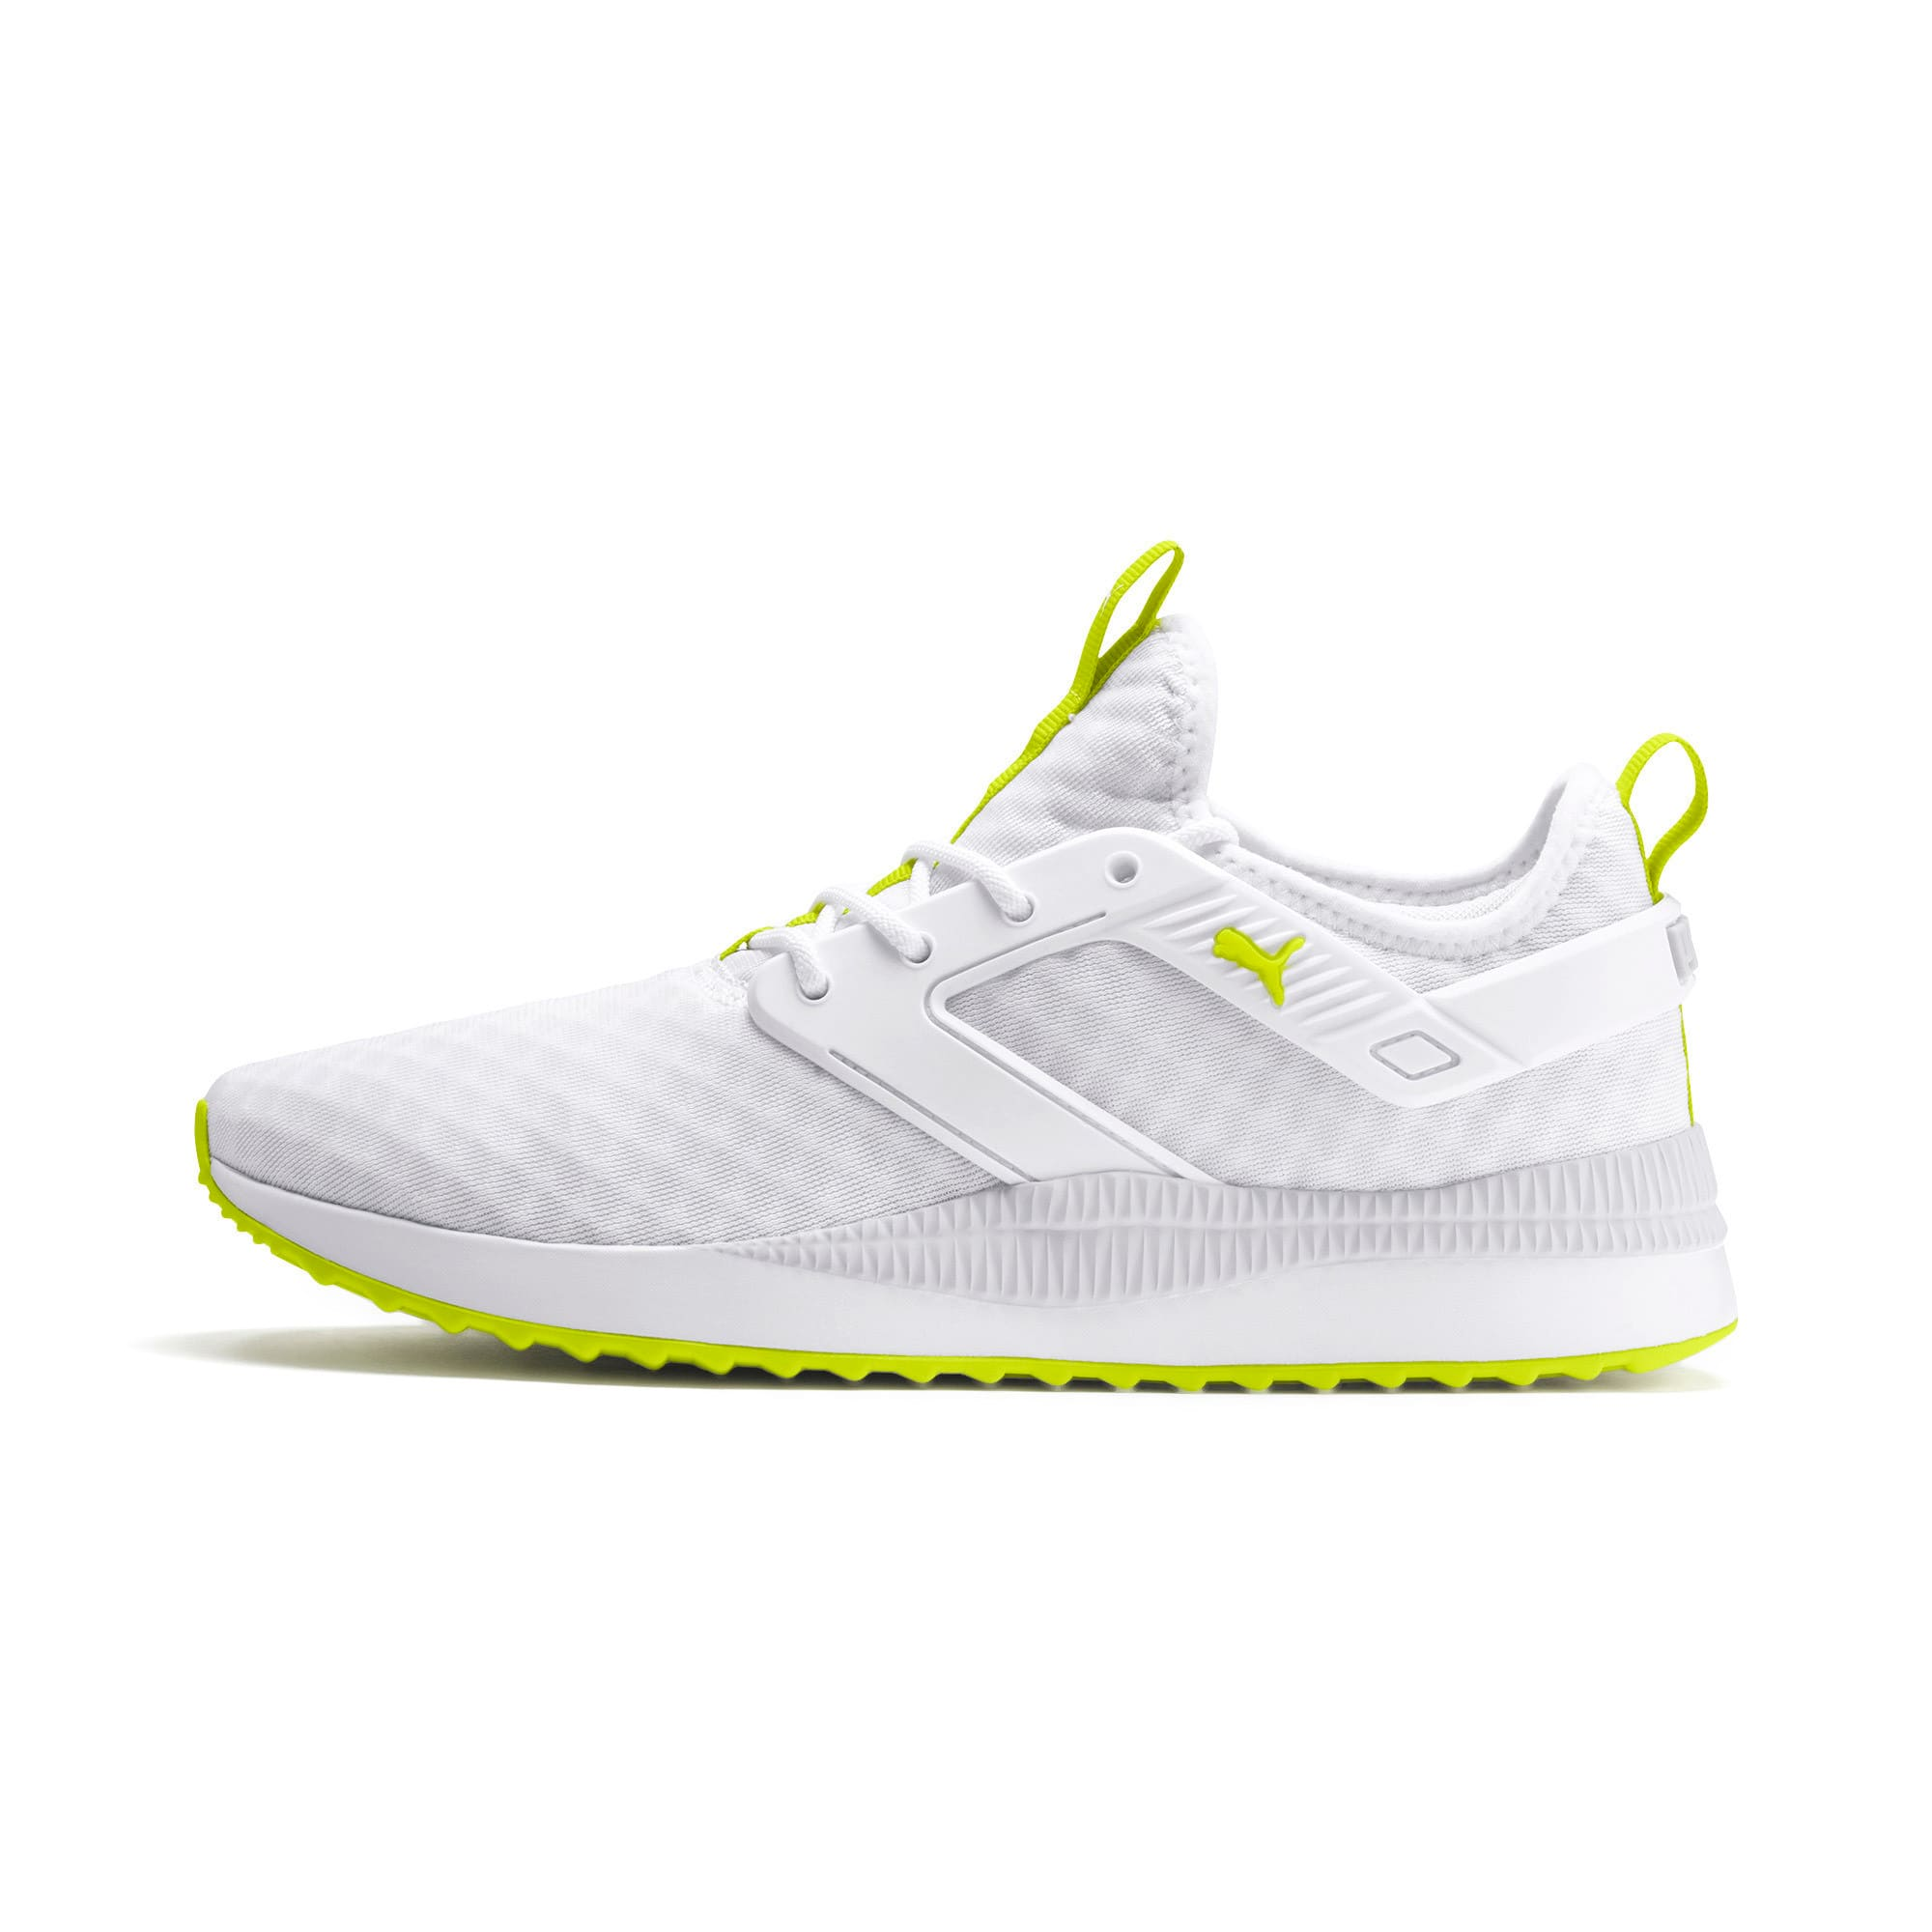 Thumbnail 1 of Pacer Next Excel Core Sneakers, Puma White-Nrgy Yellow, medium